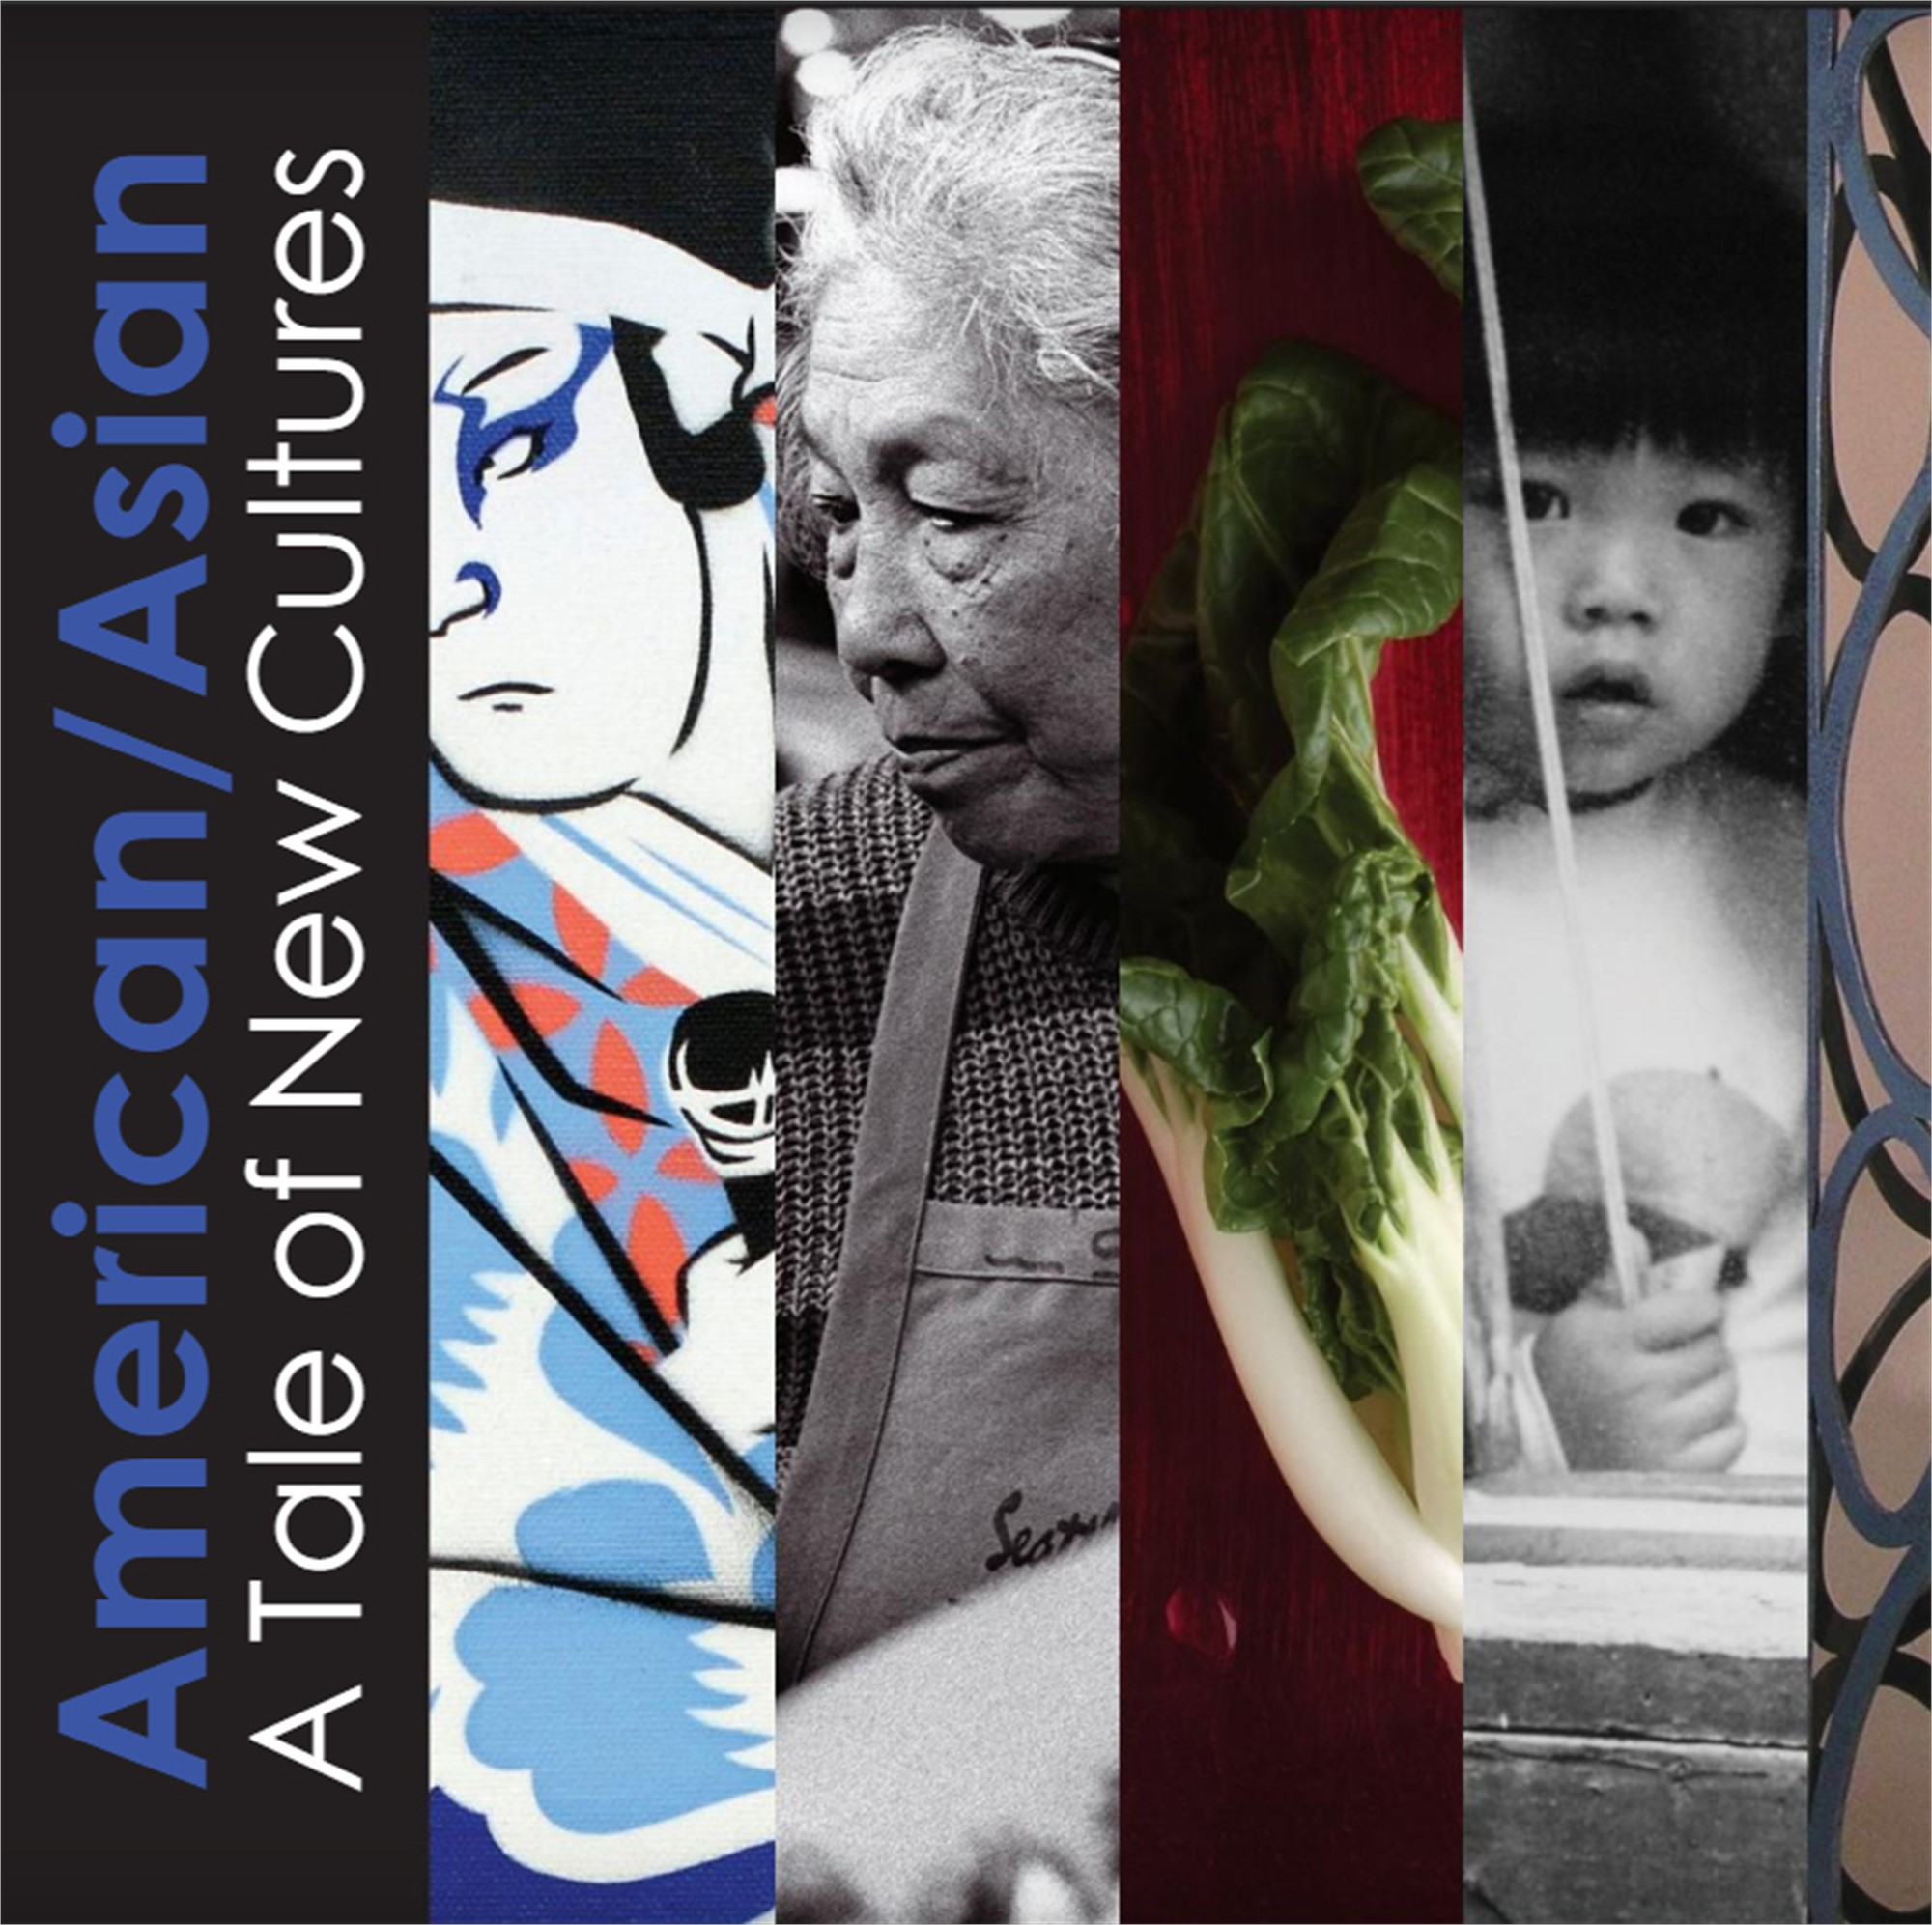 American/Asian: A Tale of New Cultures | Exhibition Catalog by ArtXchange Gallery